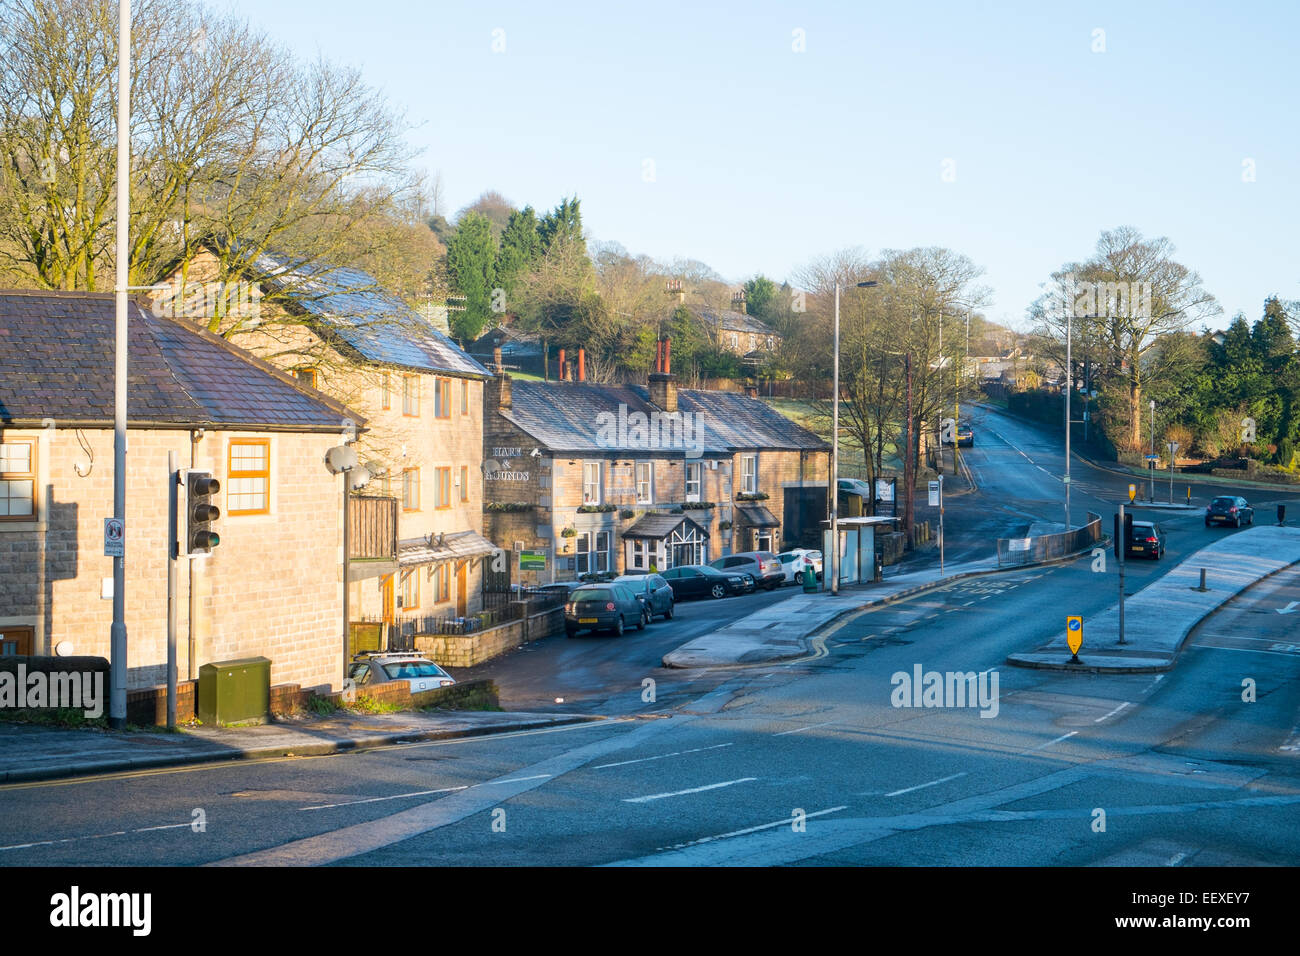 Holcombe brook a village in Lancashire and the local pub, the hare and hounds on bolton road west, england - Stock Image